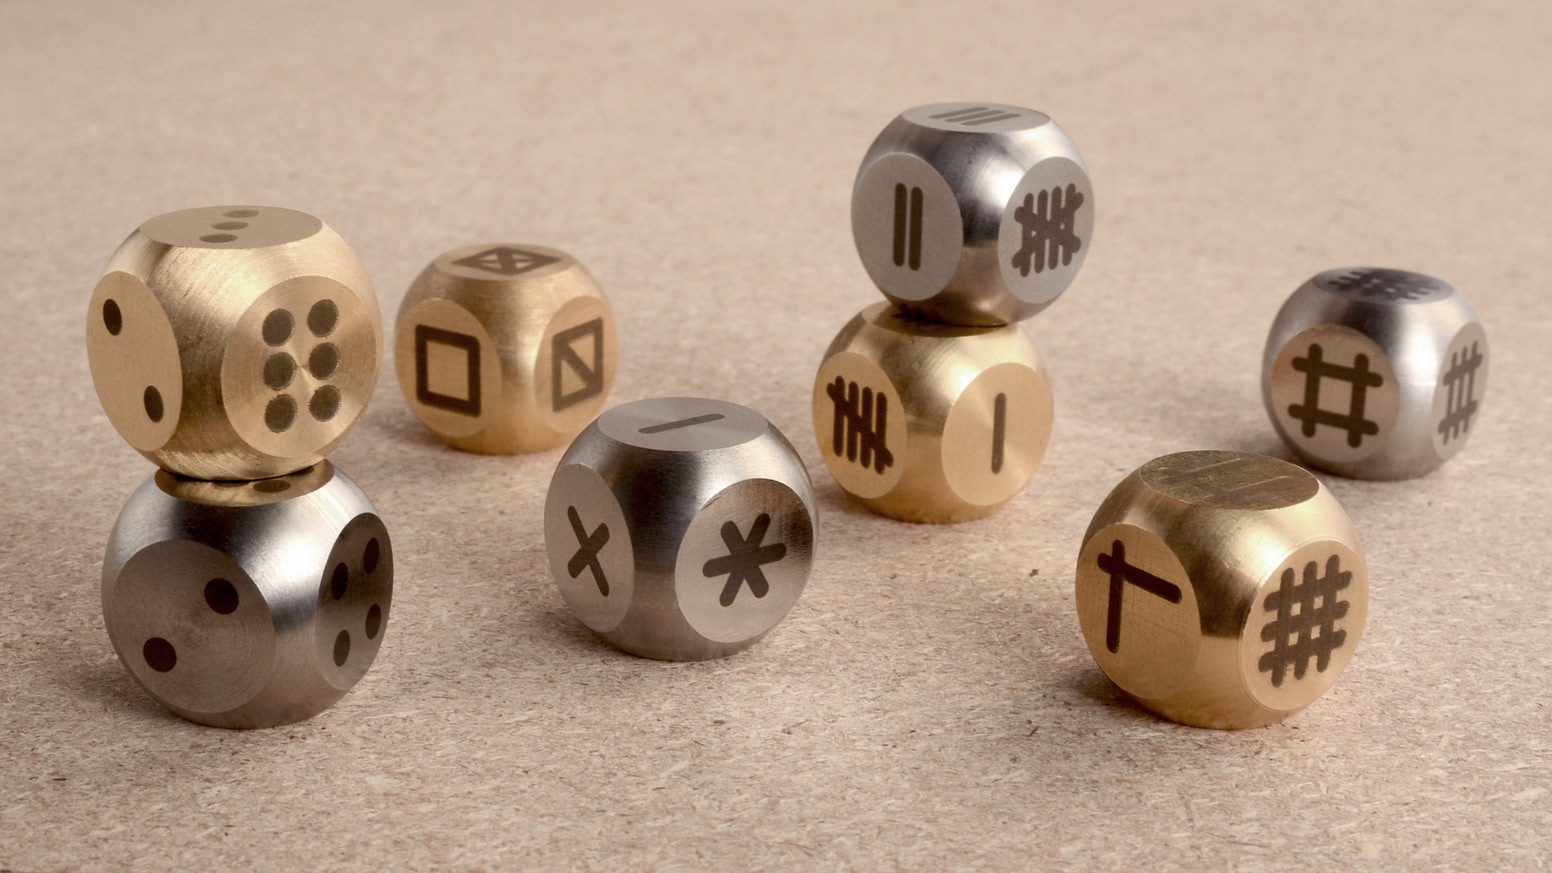 Upgrade your dice: a family of graphic alternatives to classic dots in Stainless & Brass.